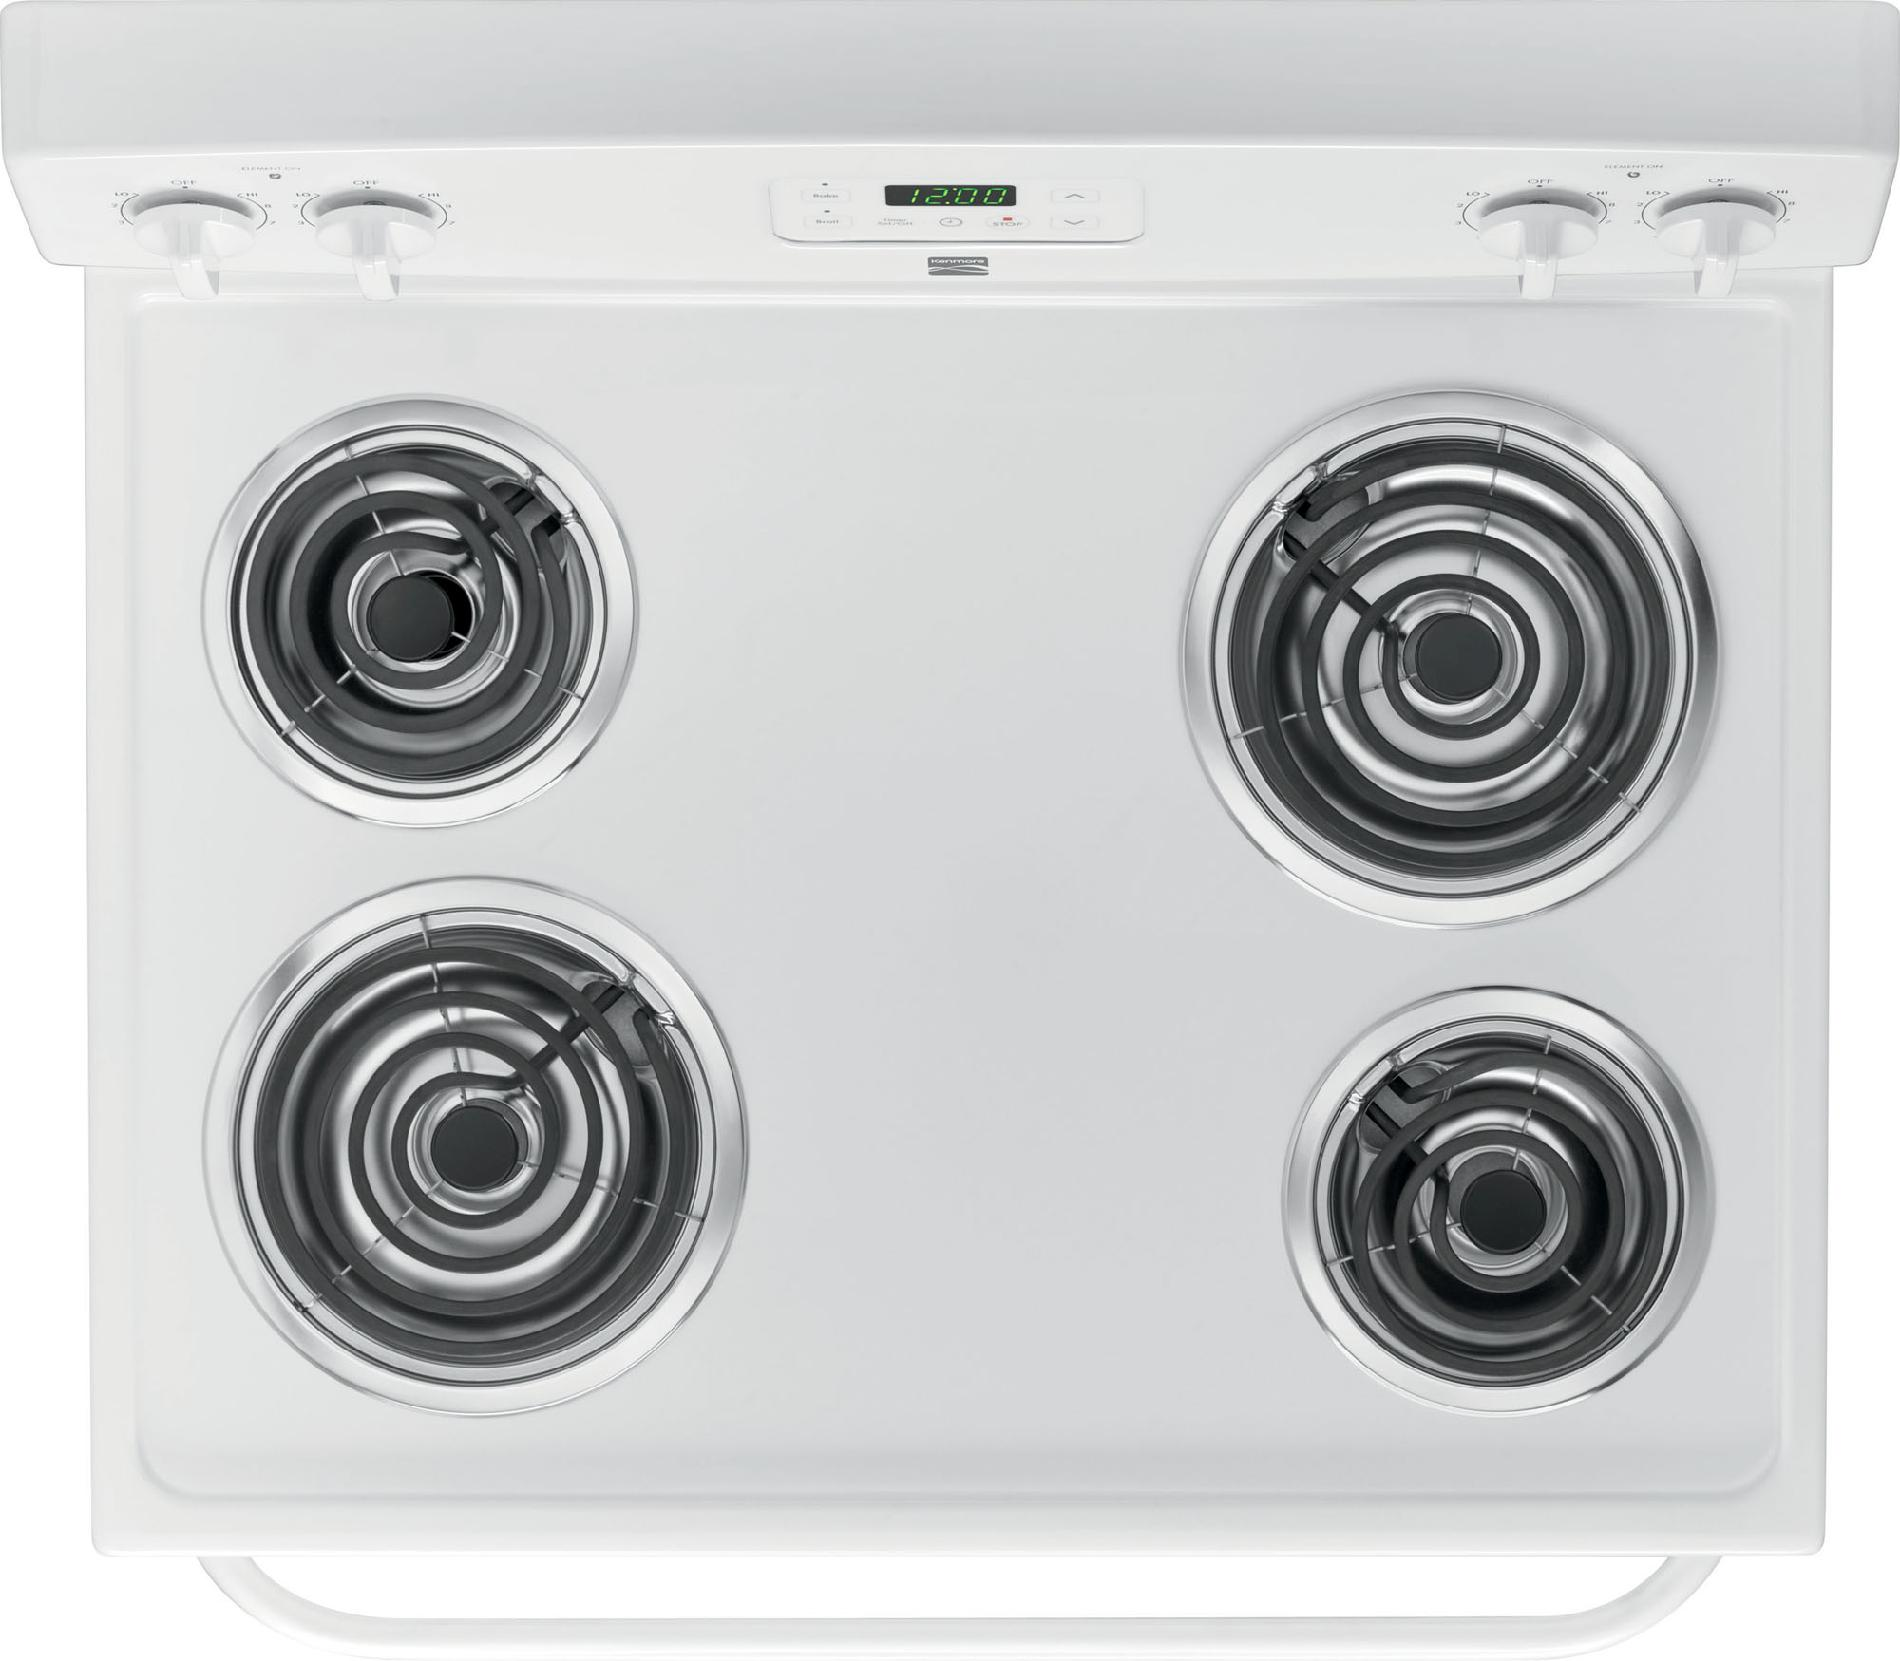 Kenmore 4.2 cu. ft. Electric Range - White